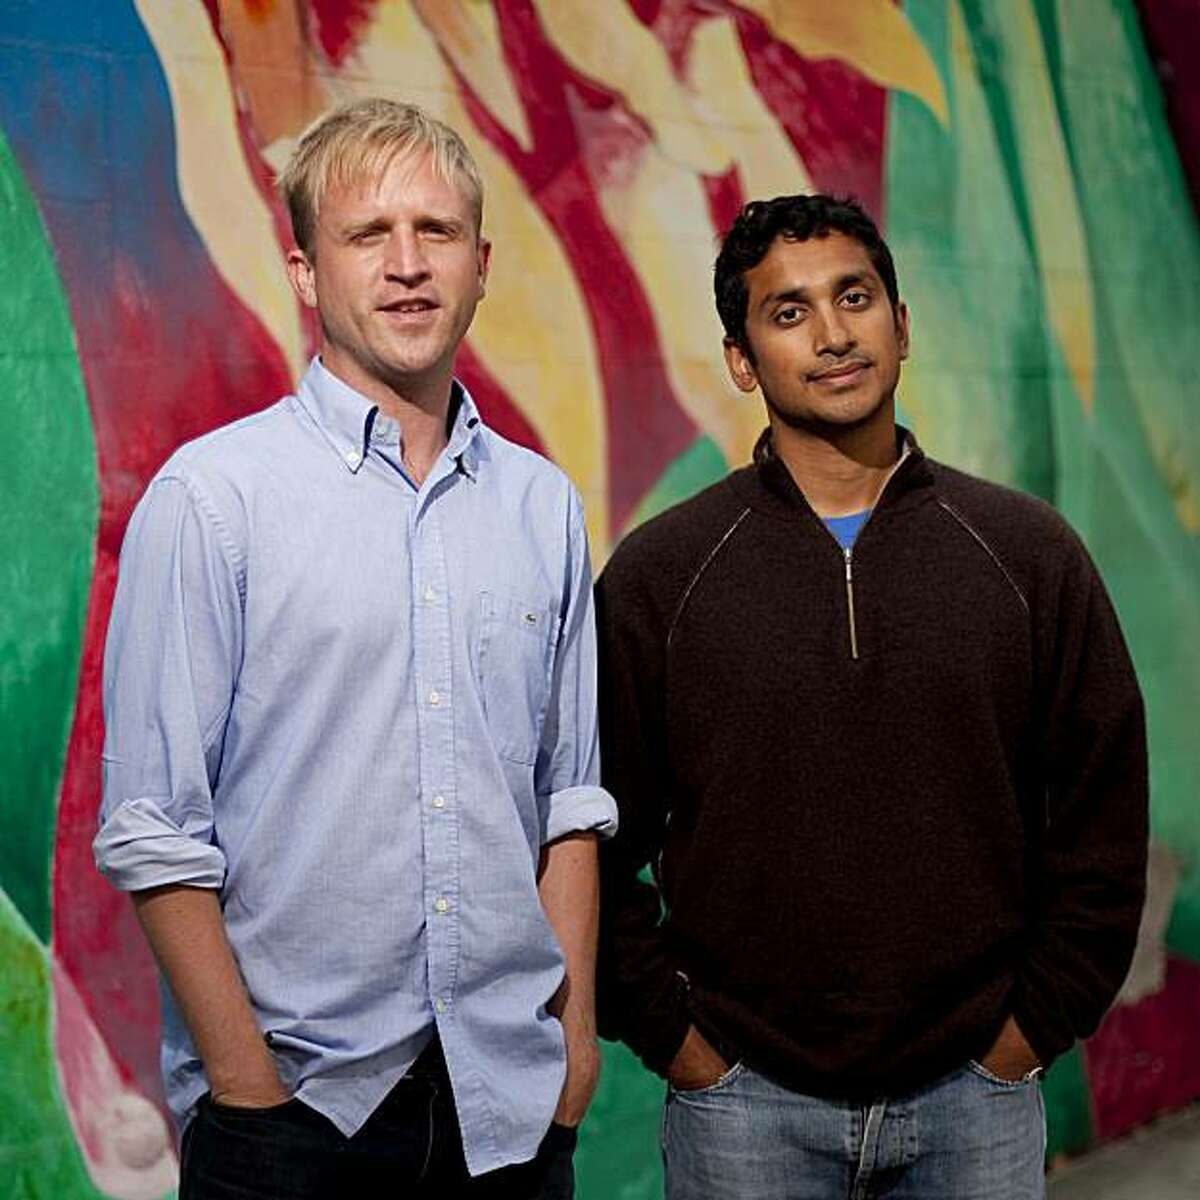 Kiva co-founder Matt Flannery, left, and president Premal Shah, right stands for a portrait at a mural near their office on Harrison Street in San Francisco's Mission District in on Tuesday, Aug. 11, 2009.